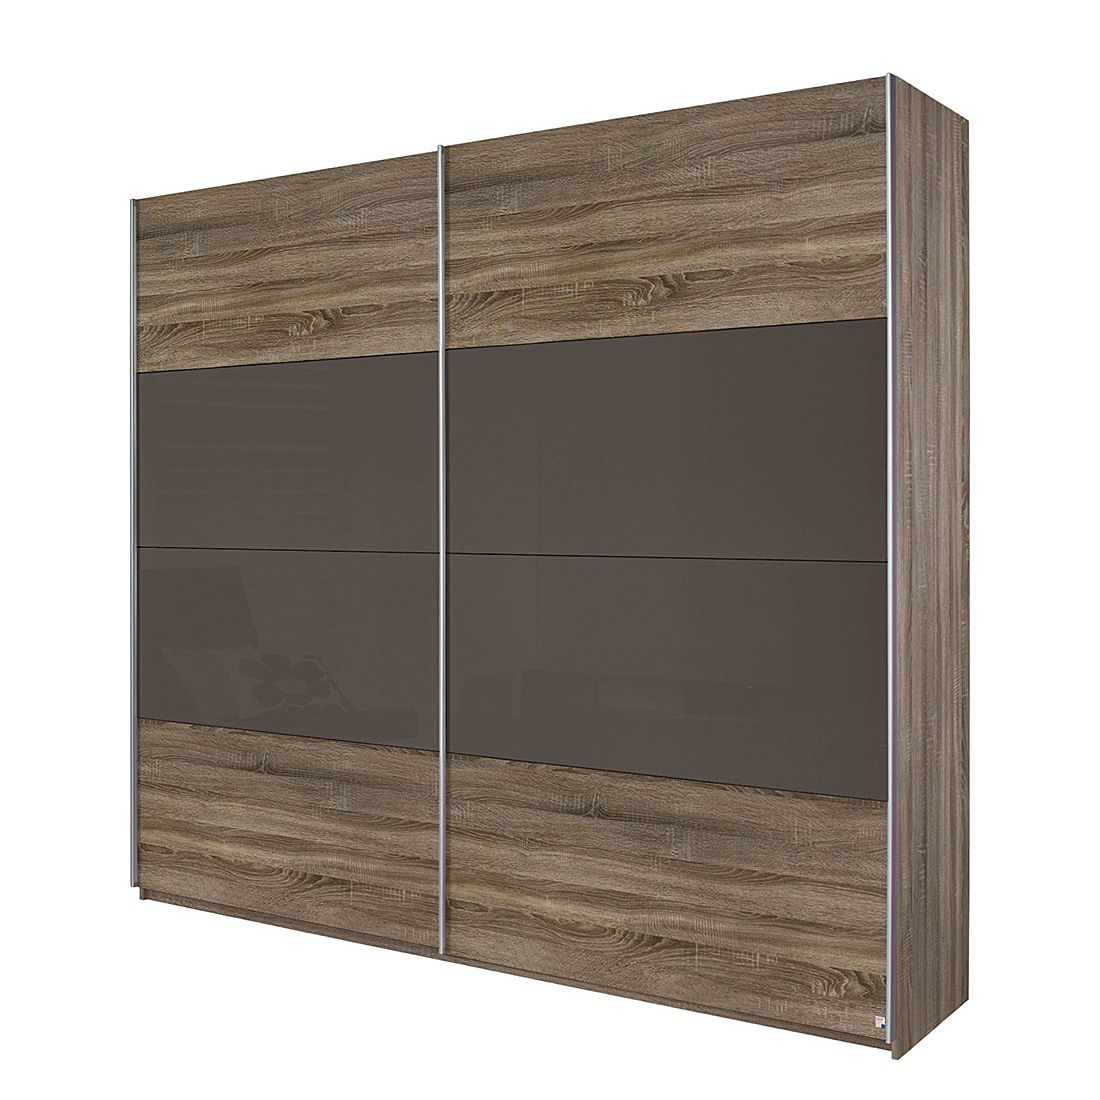 schwebet renschrank quadra eiche havanna glas lava schrankbreite 315 cm 2 t rig. Black Bedroom Furniture Sets. Home Design Ideas